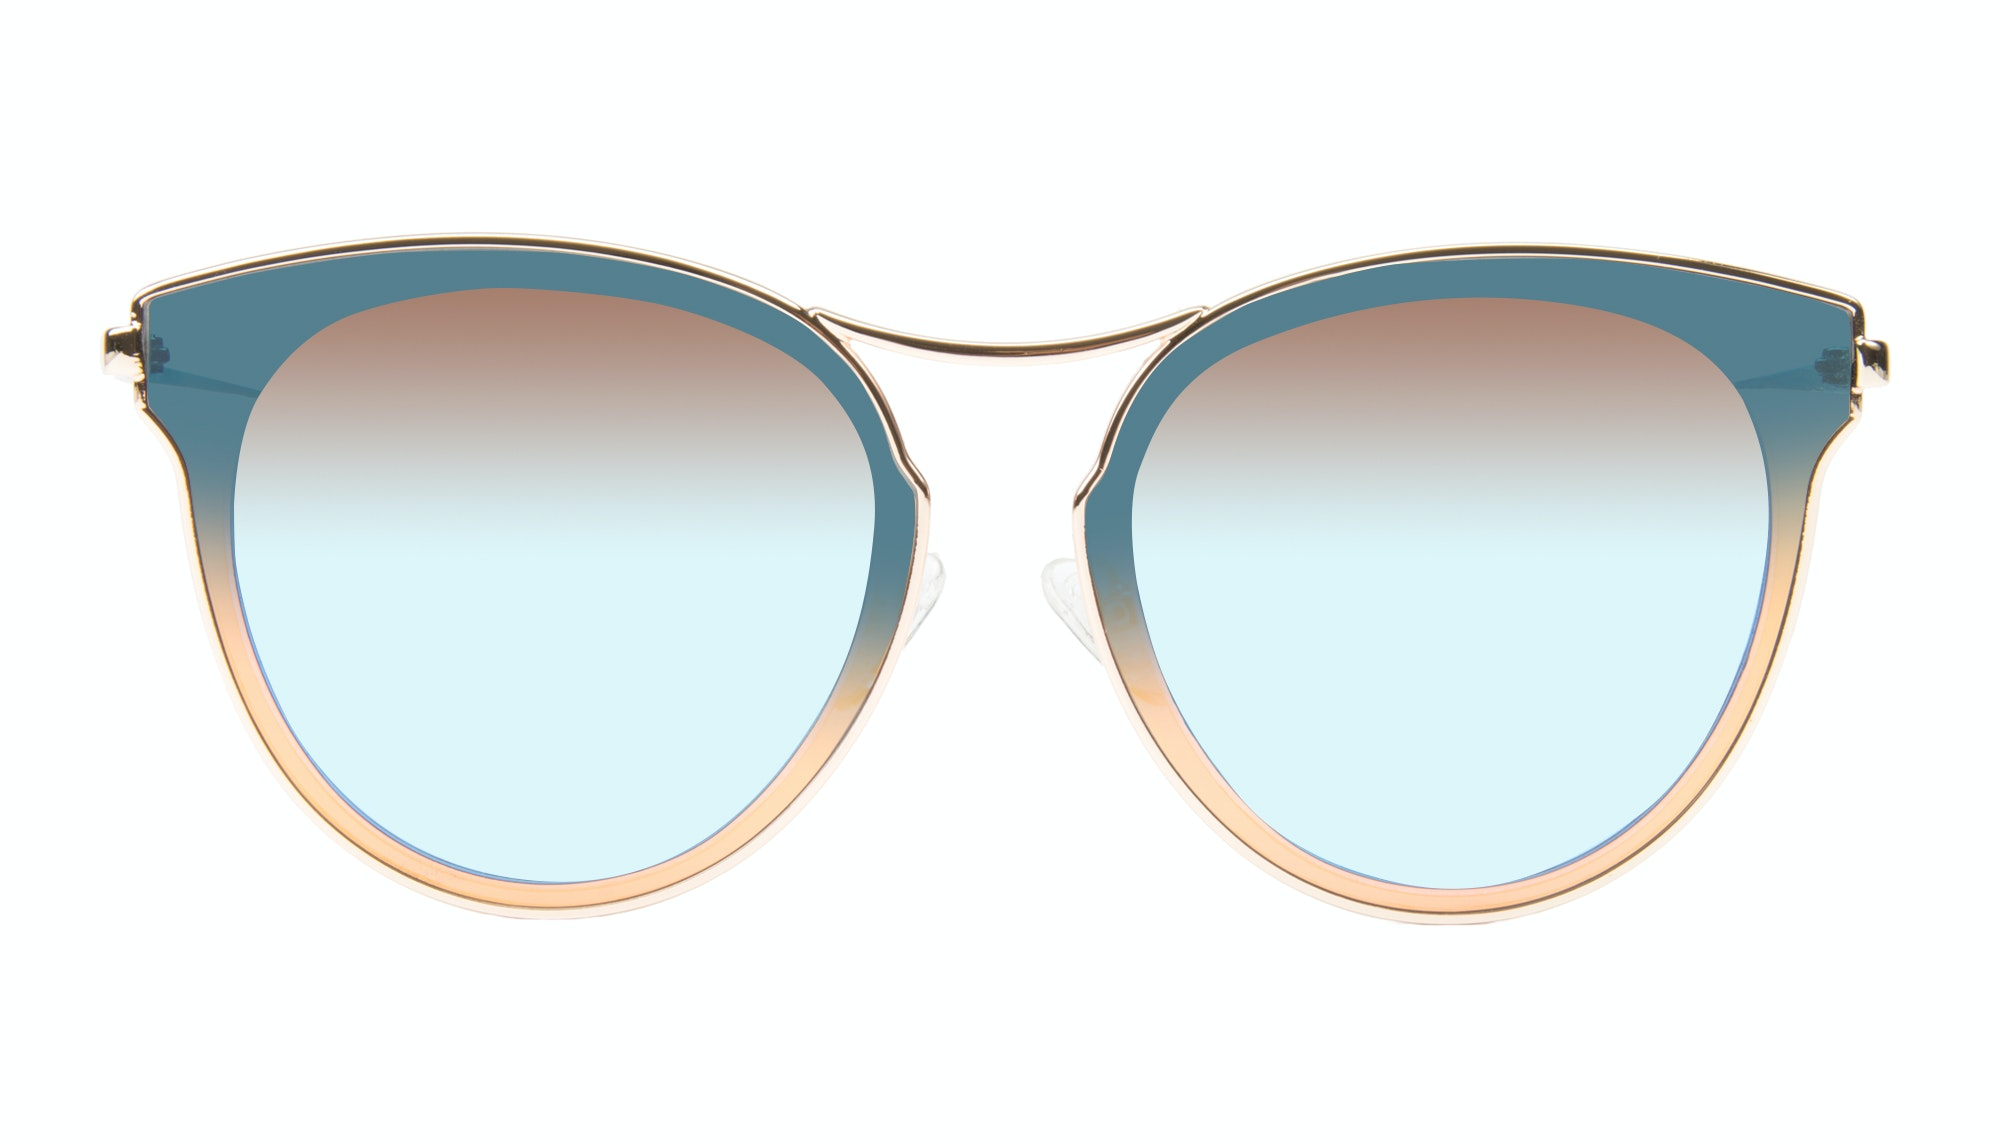 Affordable Fashion Glasses Round Sunglasses Women Glitz Gold Azure